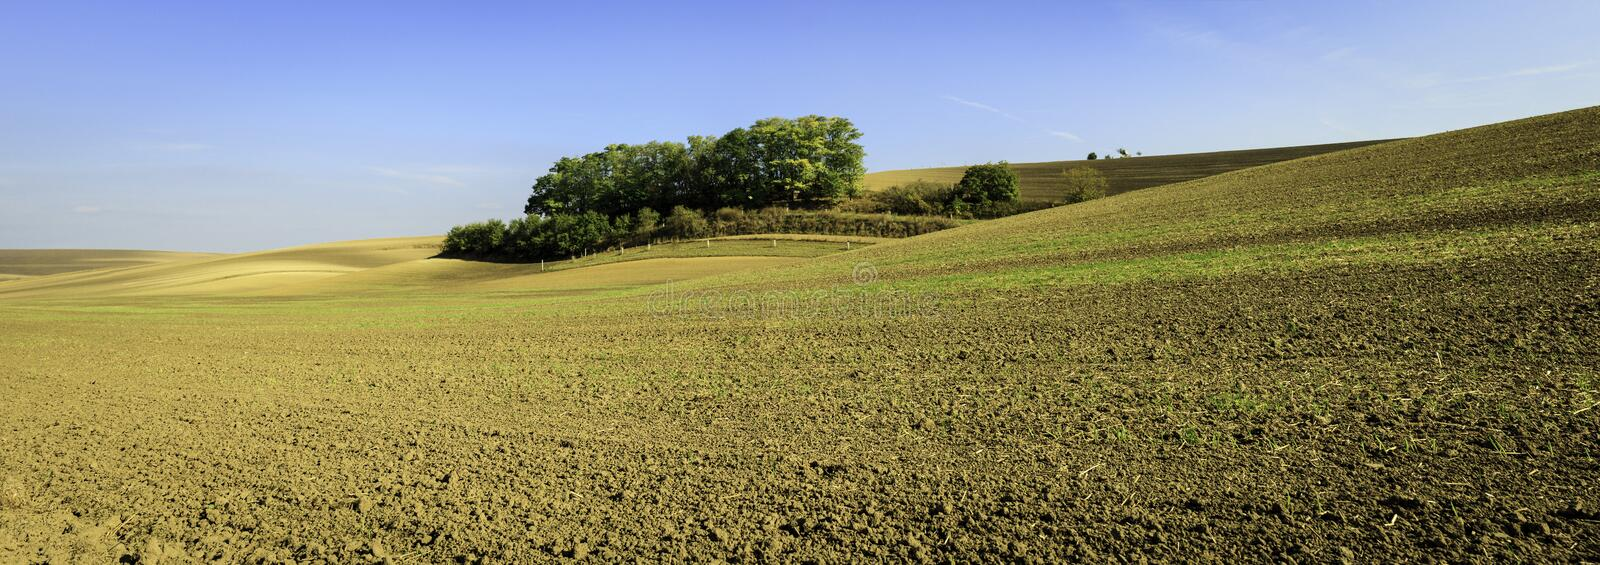 Moravian Fields. Panoramic view of cultivated field in South Moravia, Czechia. Beautiful wavy fields royalty free stock photo